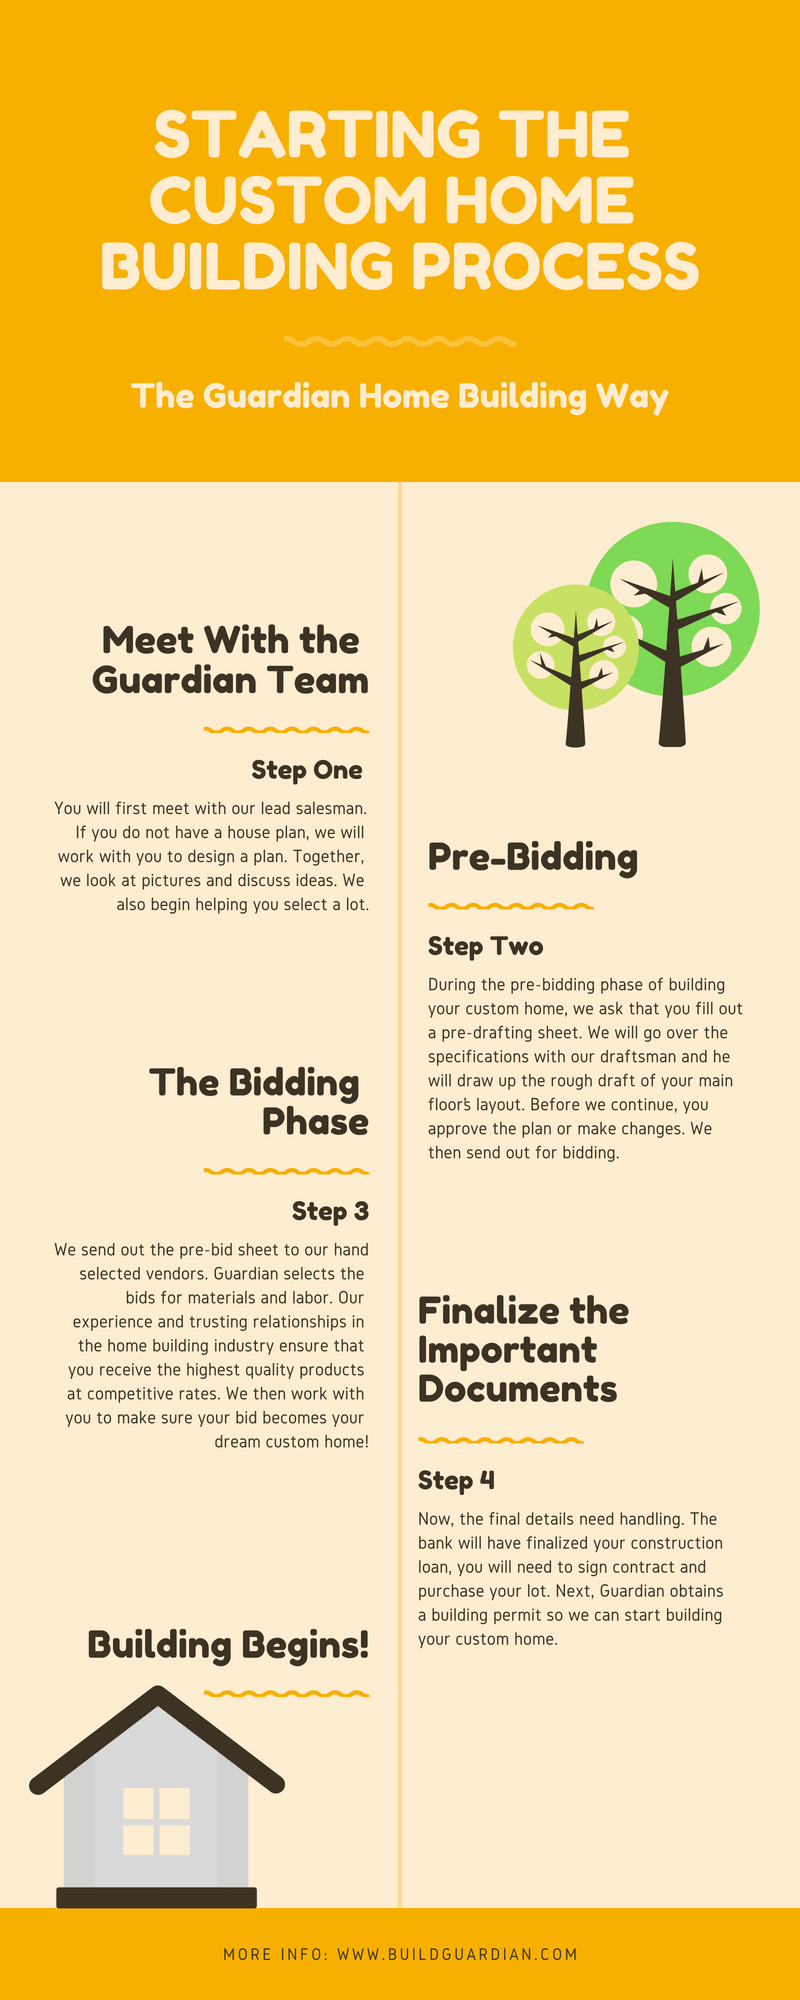 The Home Building Process Infographic